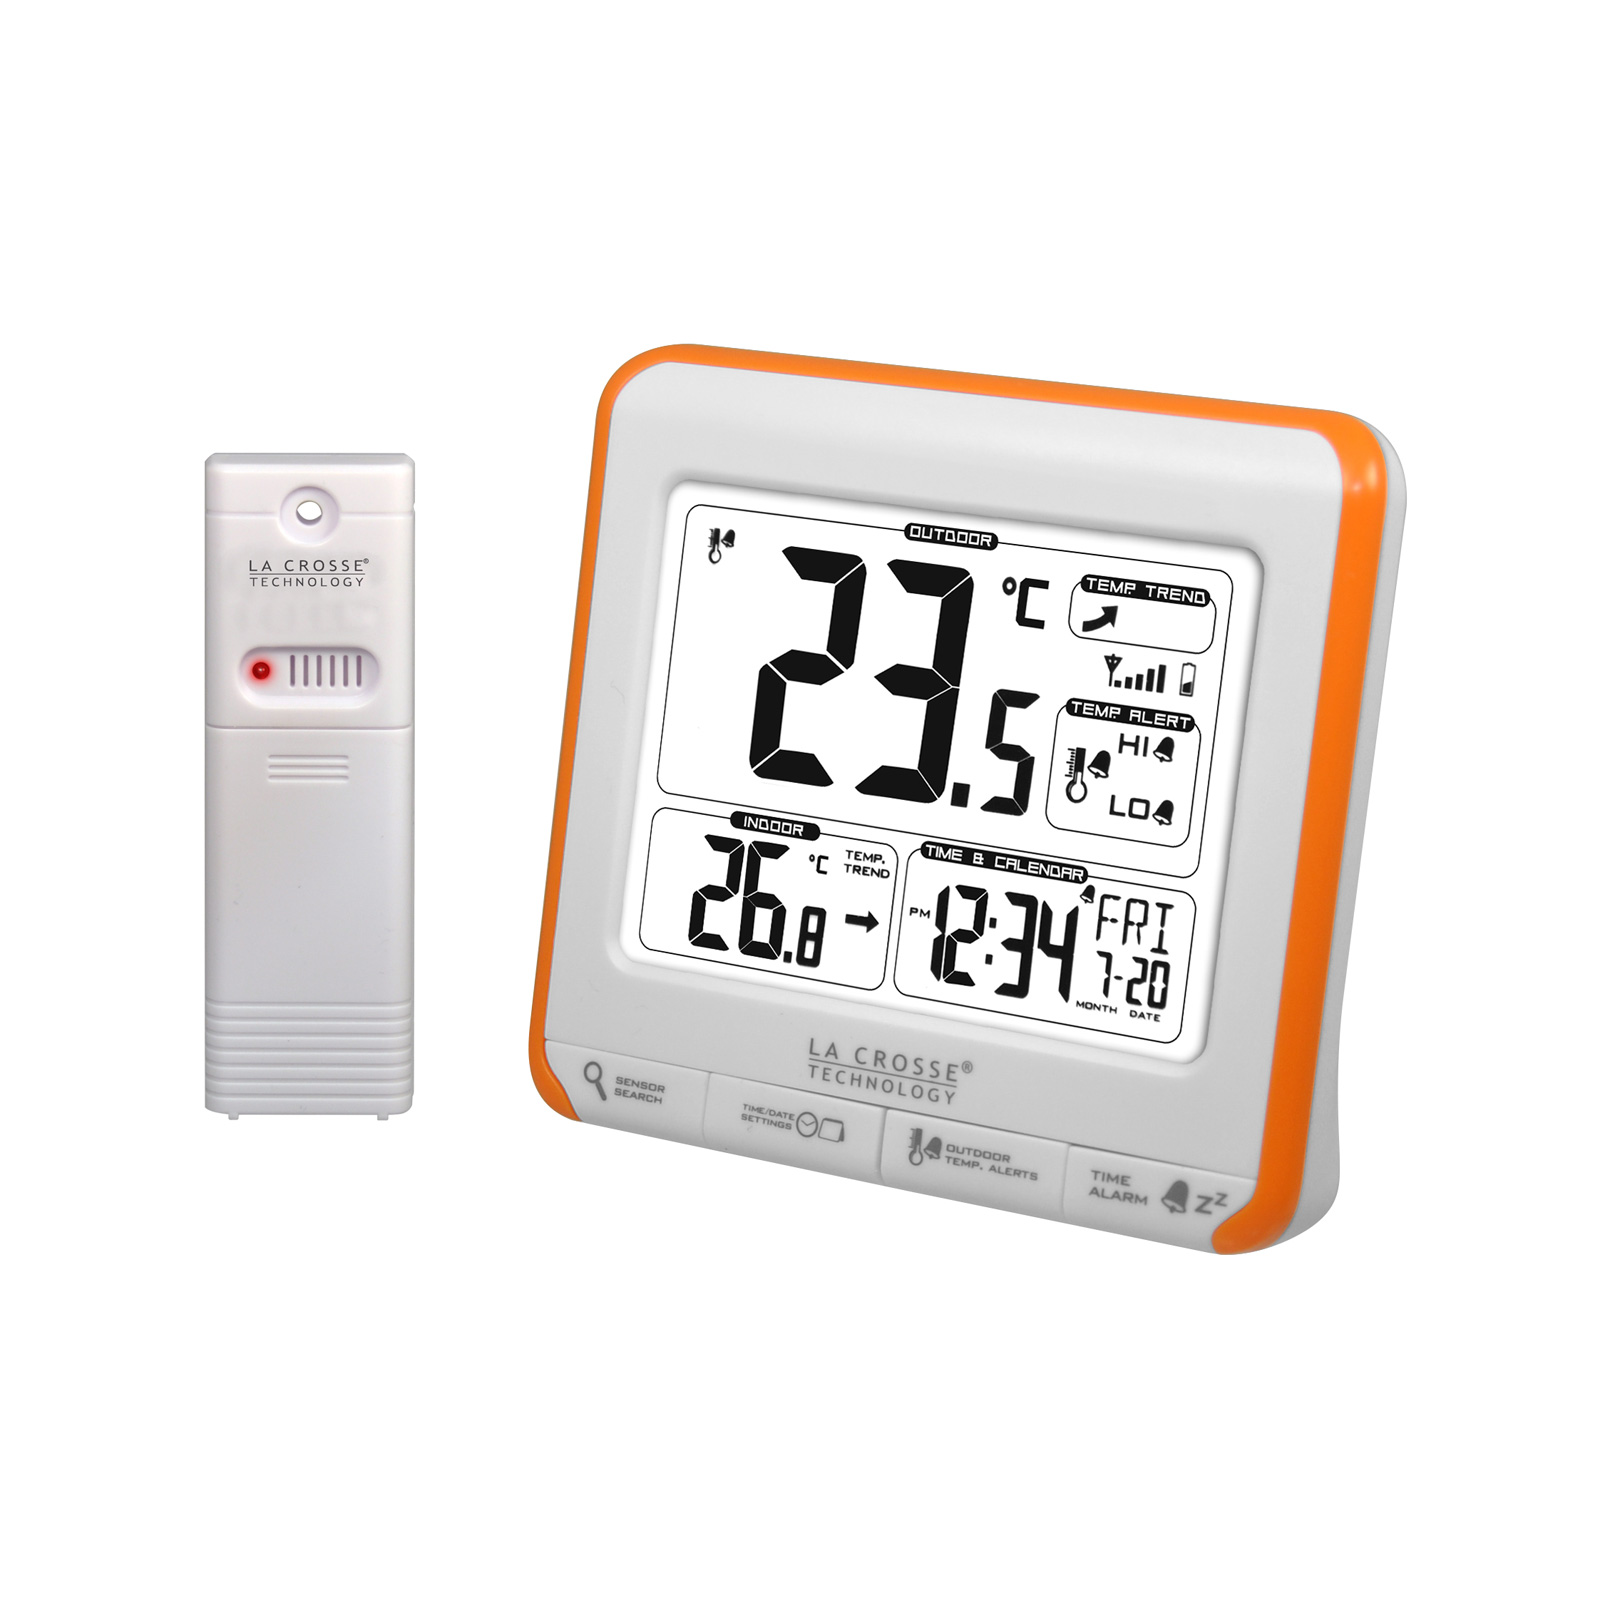 La crosse technology ws6811 orange station m t o la for Station meteo temperature interieure et exterieure